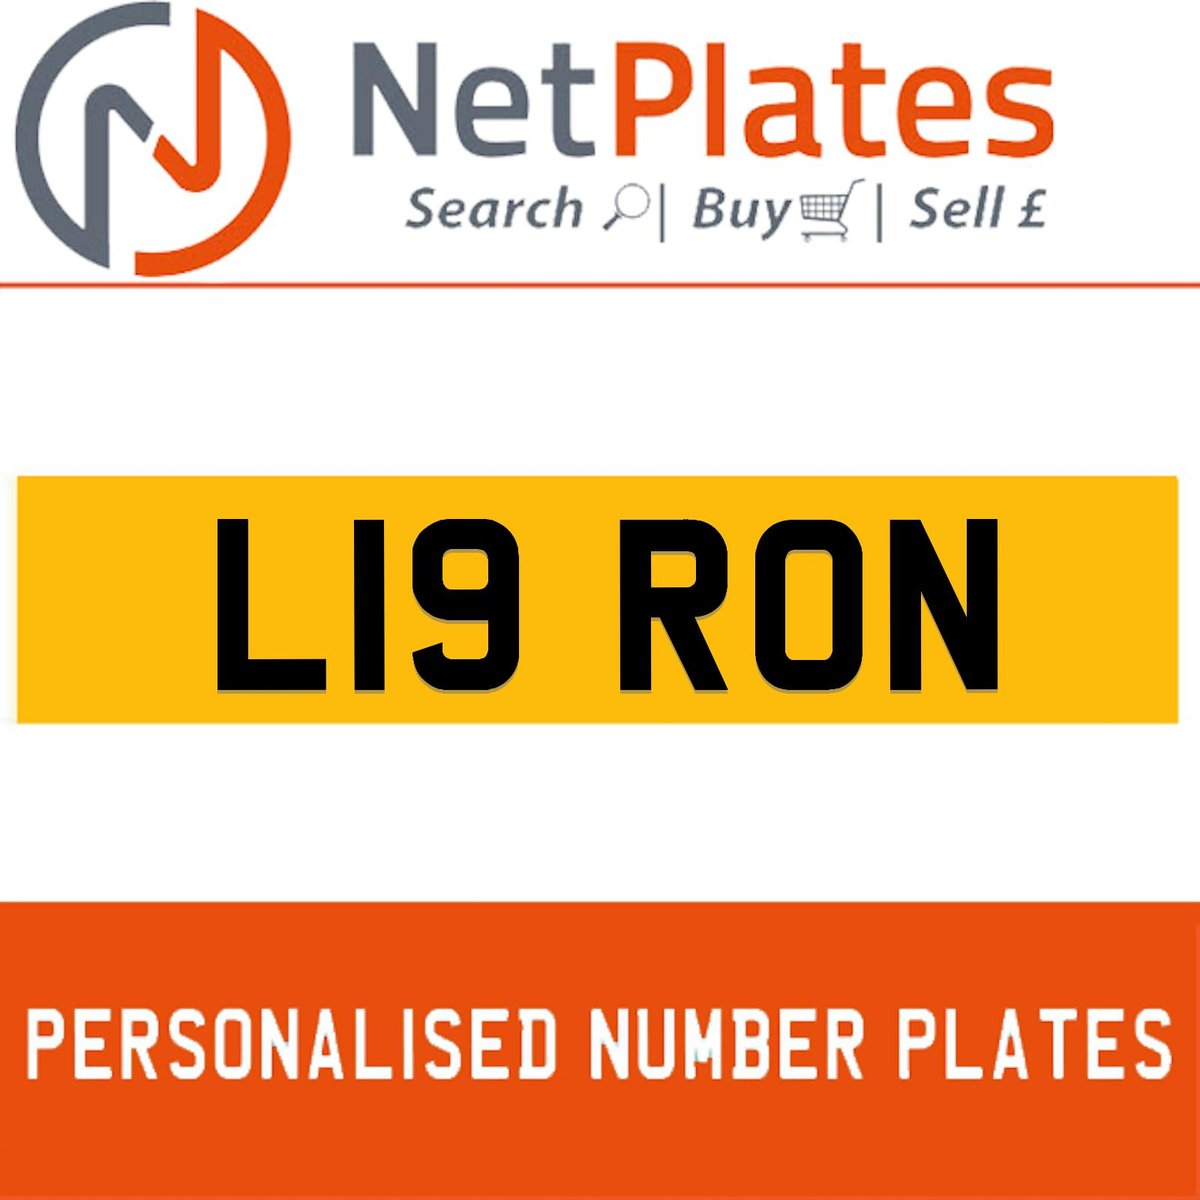 L19 RON PERSONALISED PRIVATE CHERISHED DVLA NUMBER PLATE For Sale (picture 1 of 5)